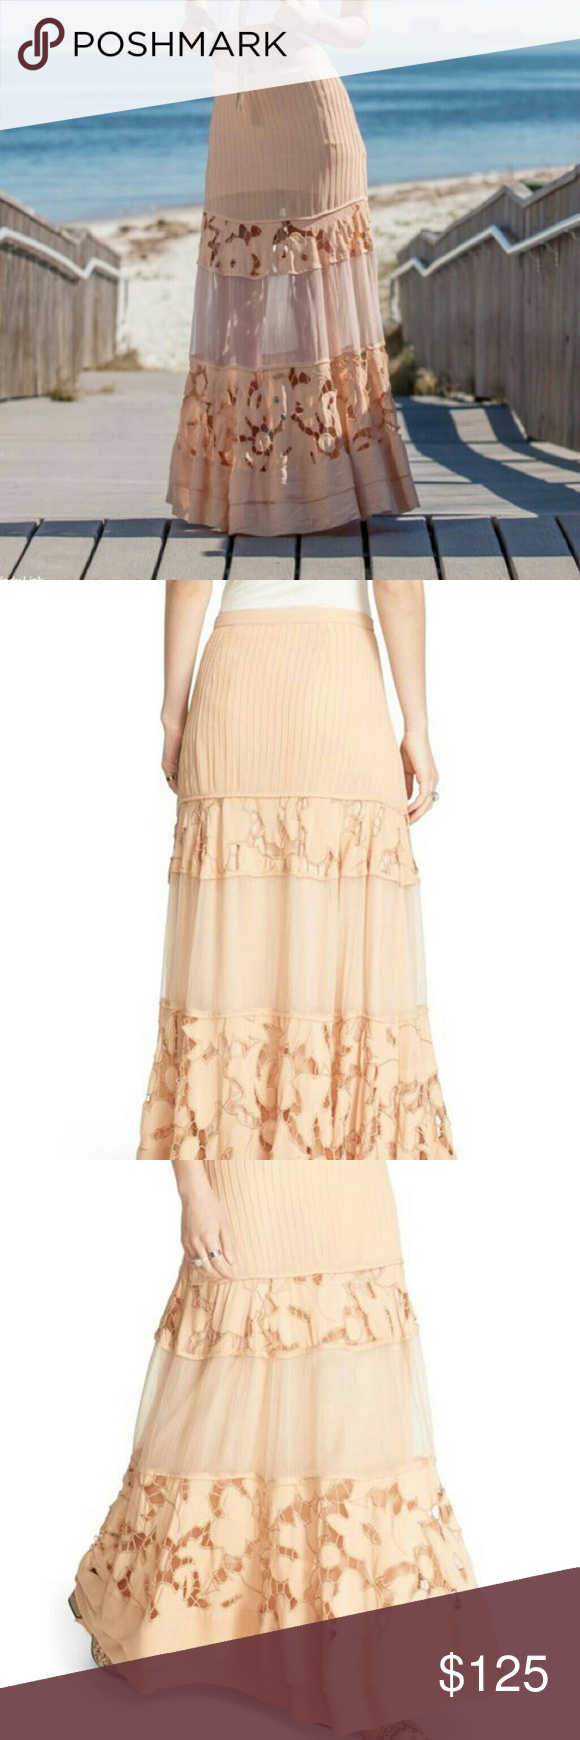 4 Peach Skirt Clothing, Shoes & Accessories Free People Sz